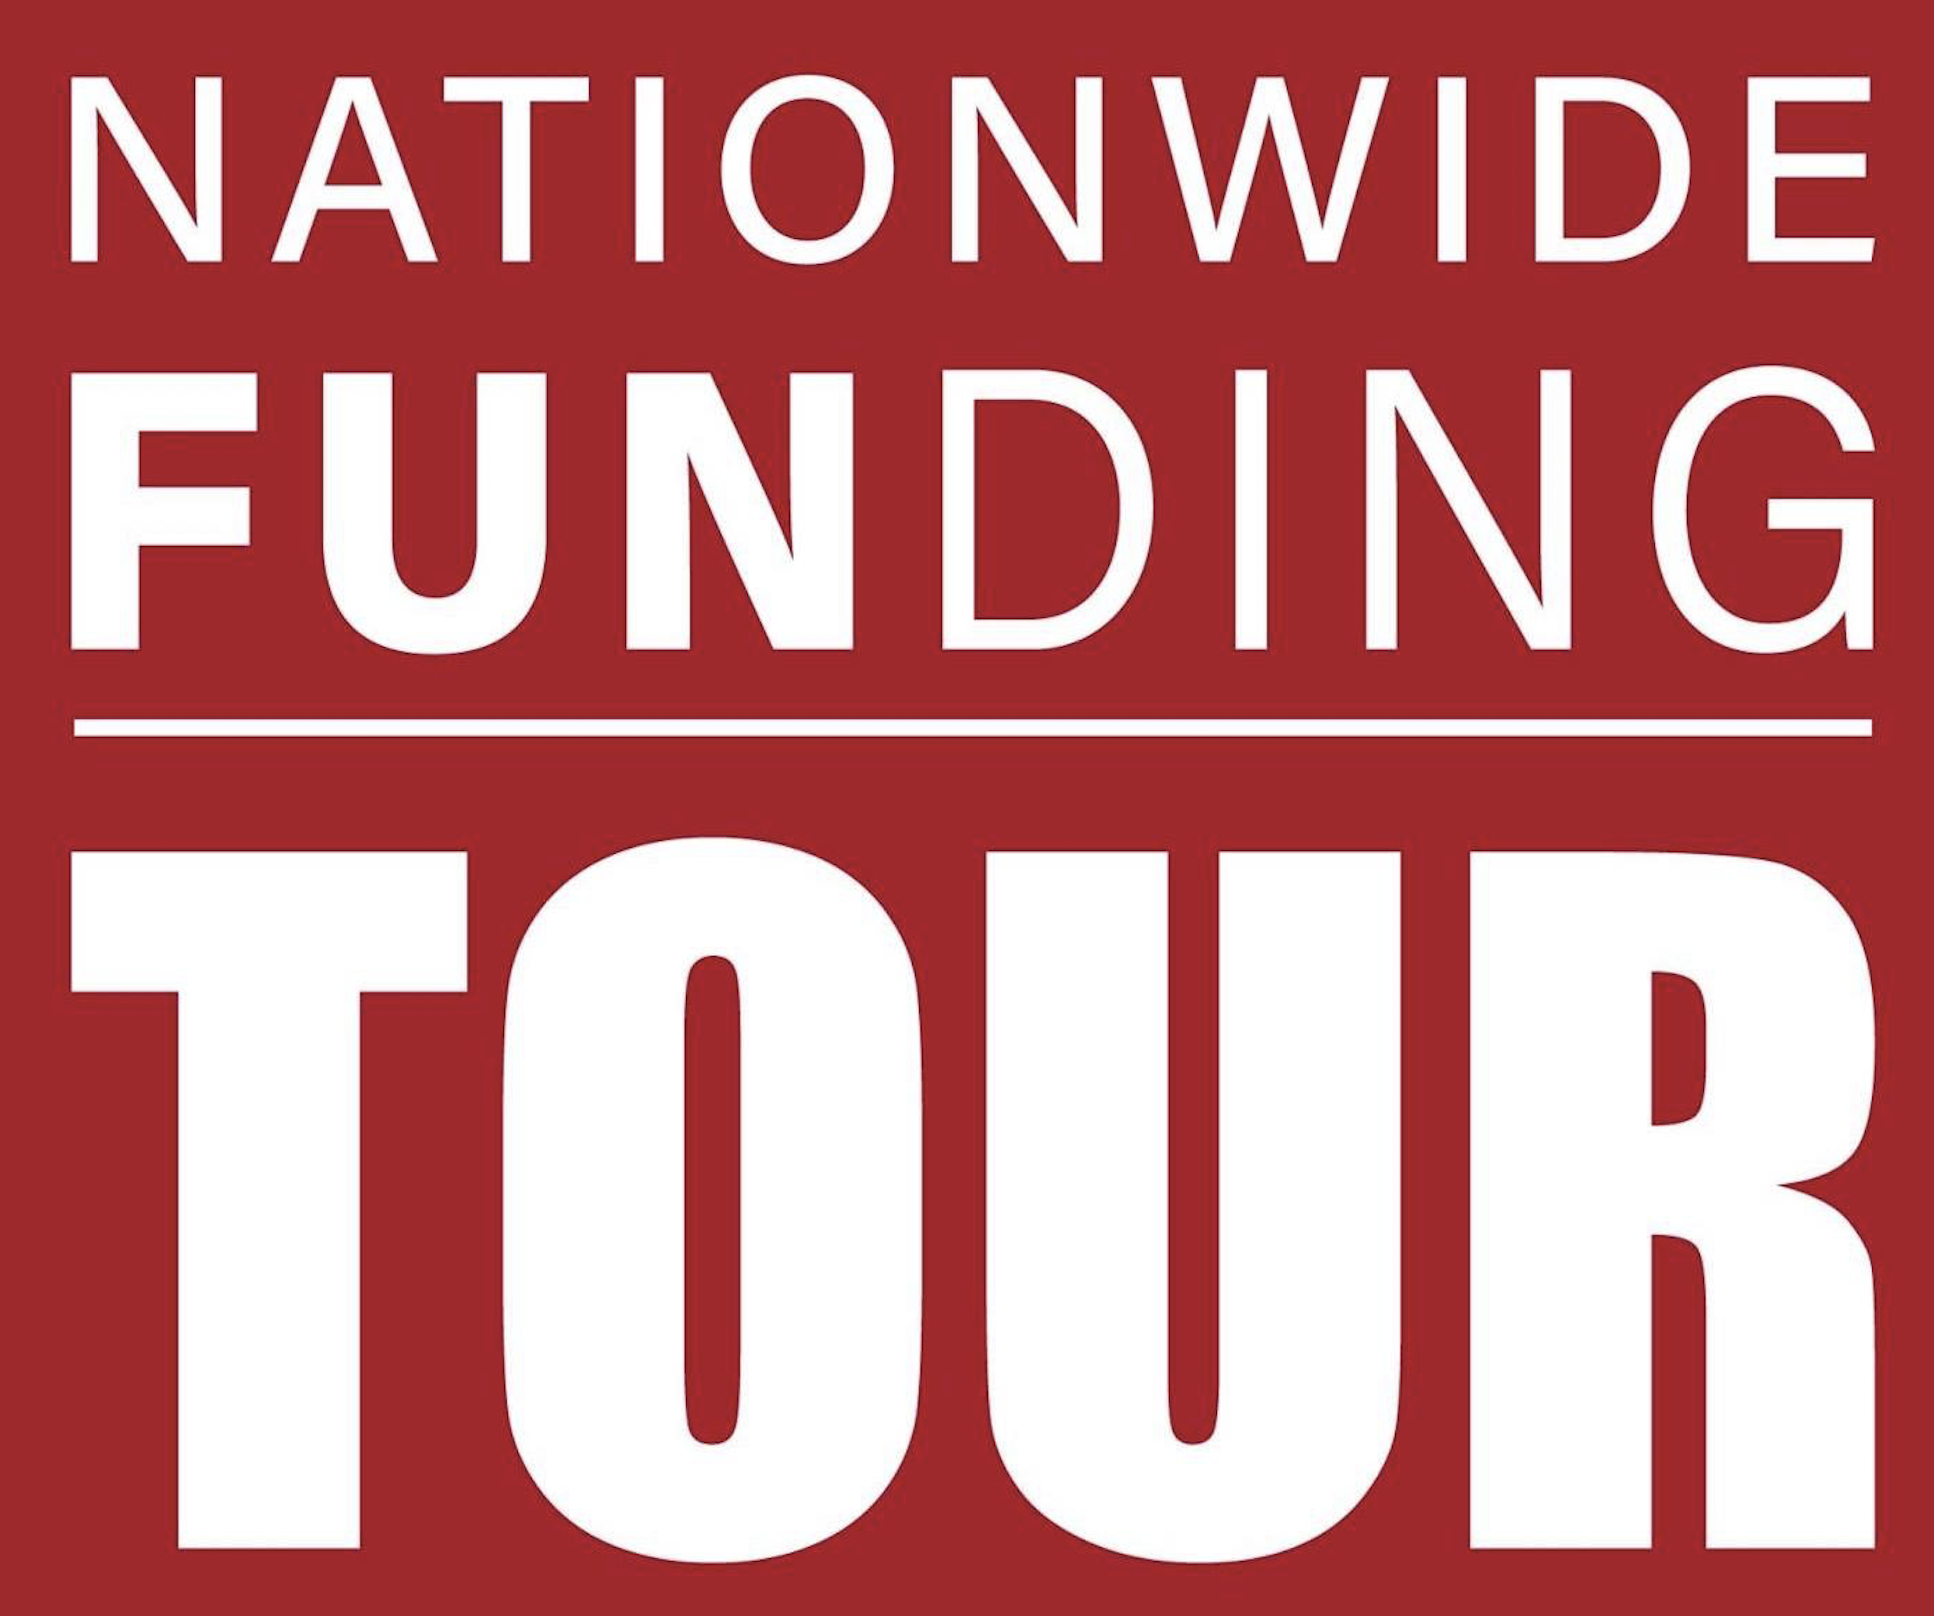 fundingtour.com